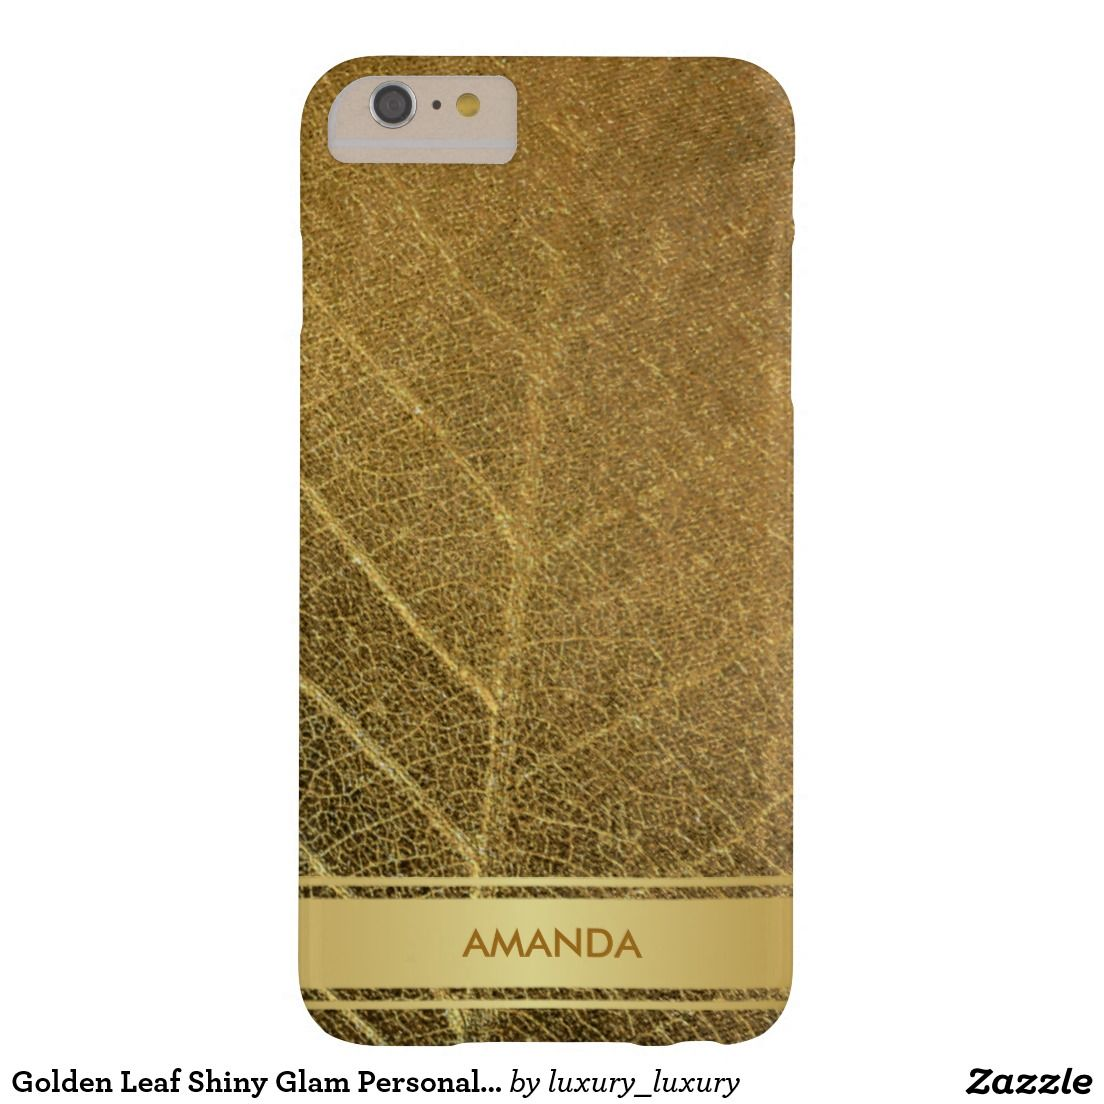 Golden Leaf Shiny Glam Personalized Vip Barely There iPhone 6 Plus Case